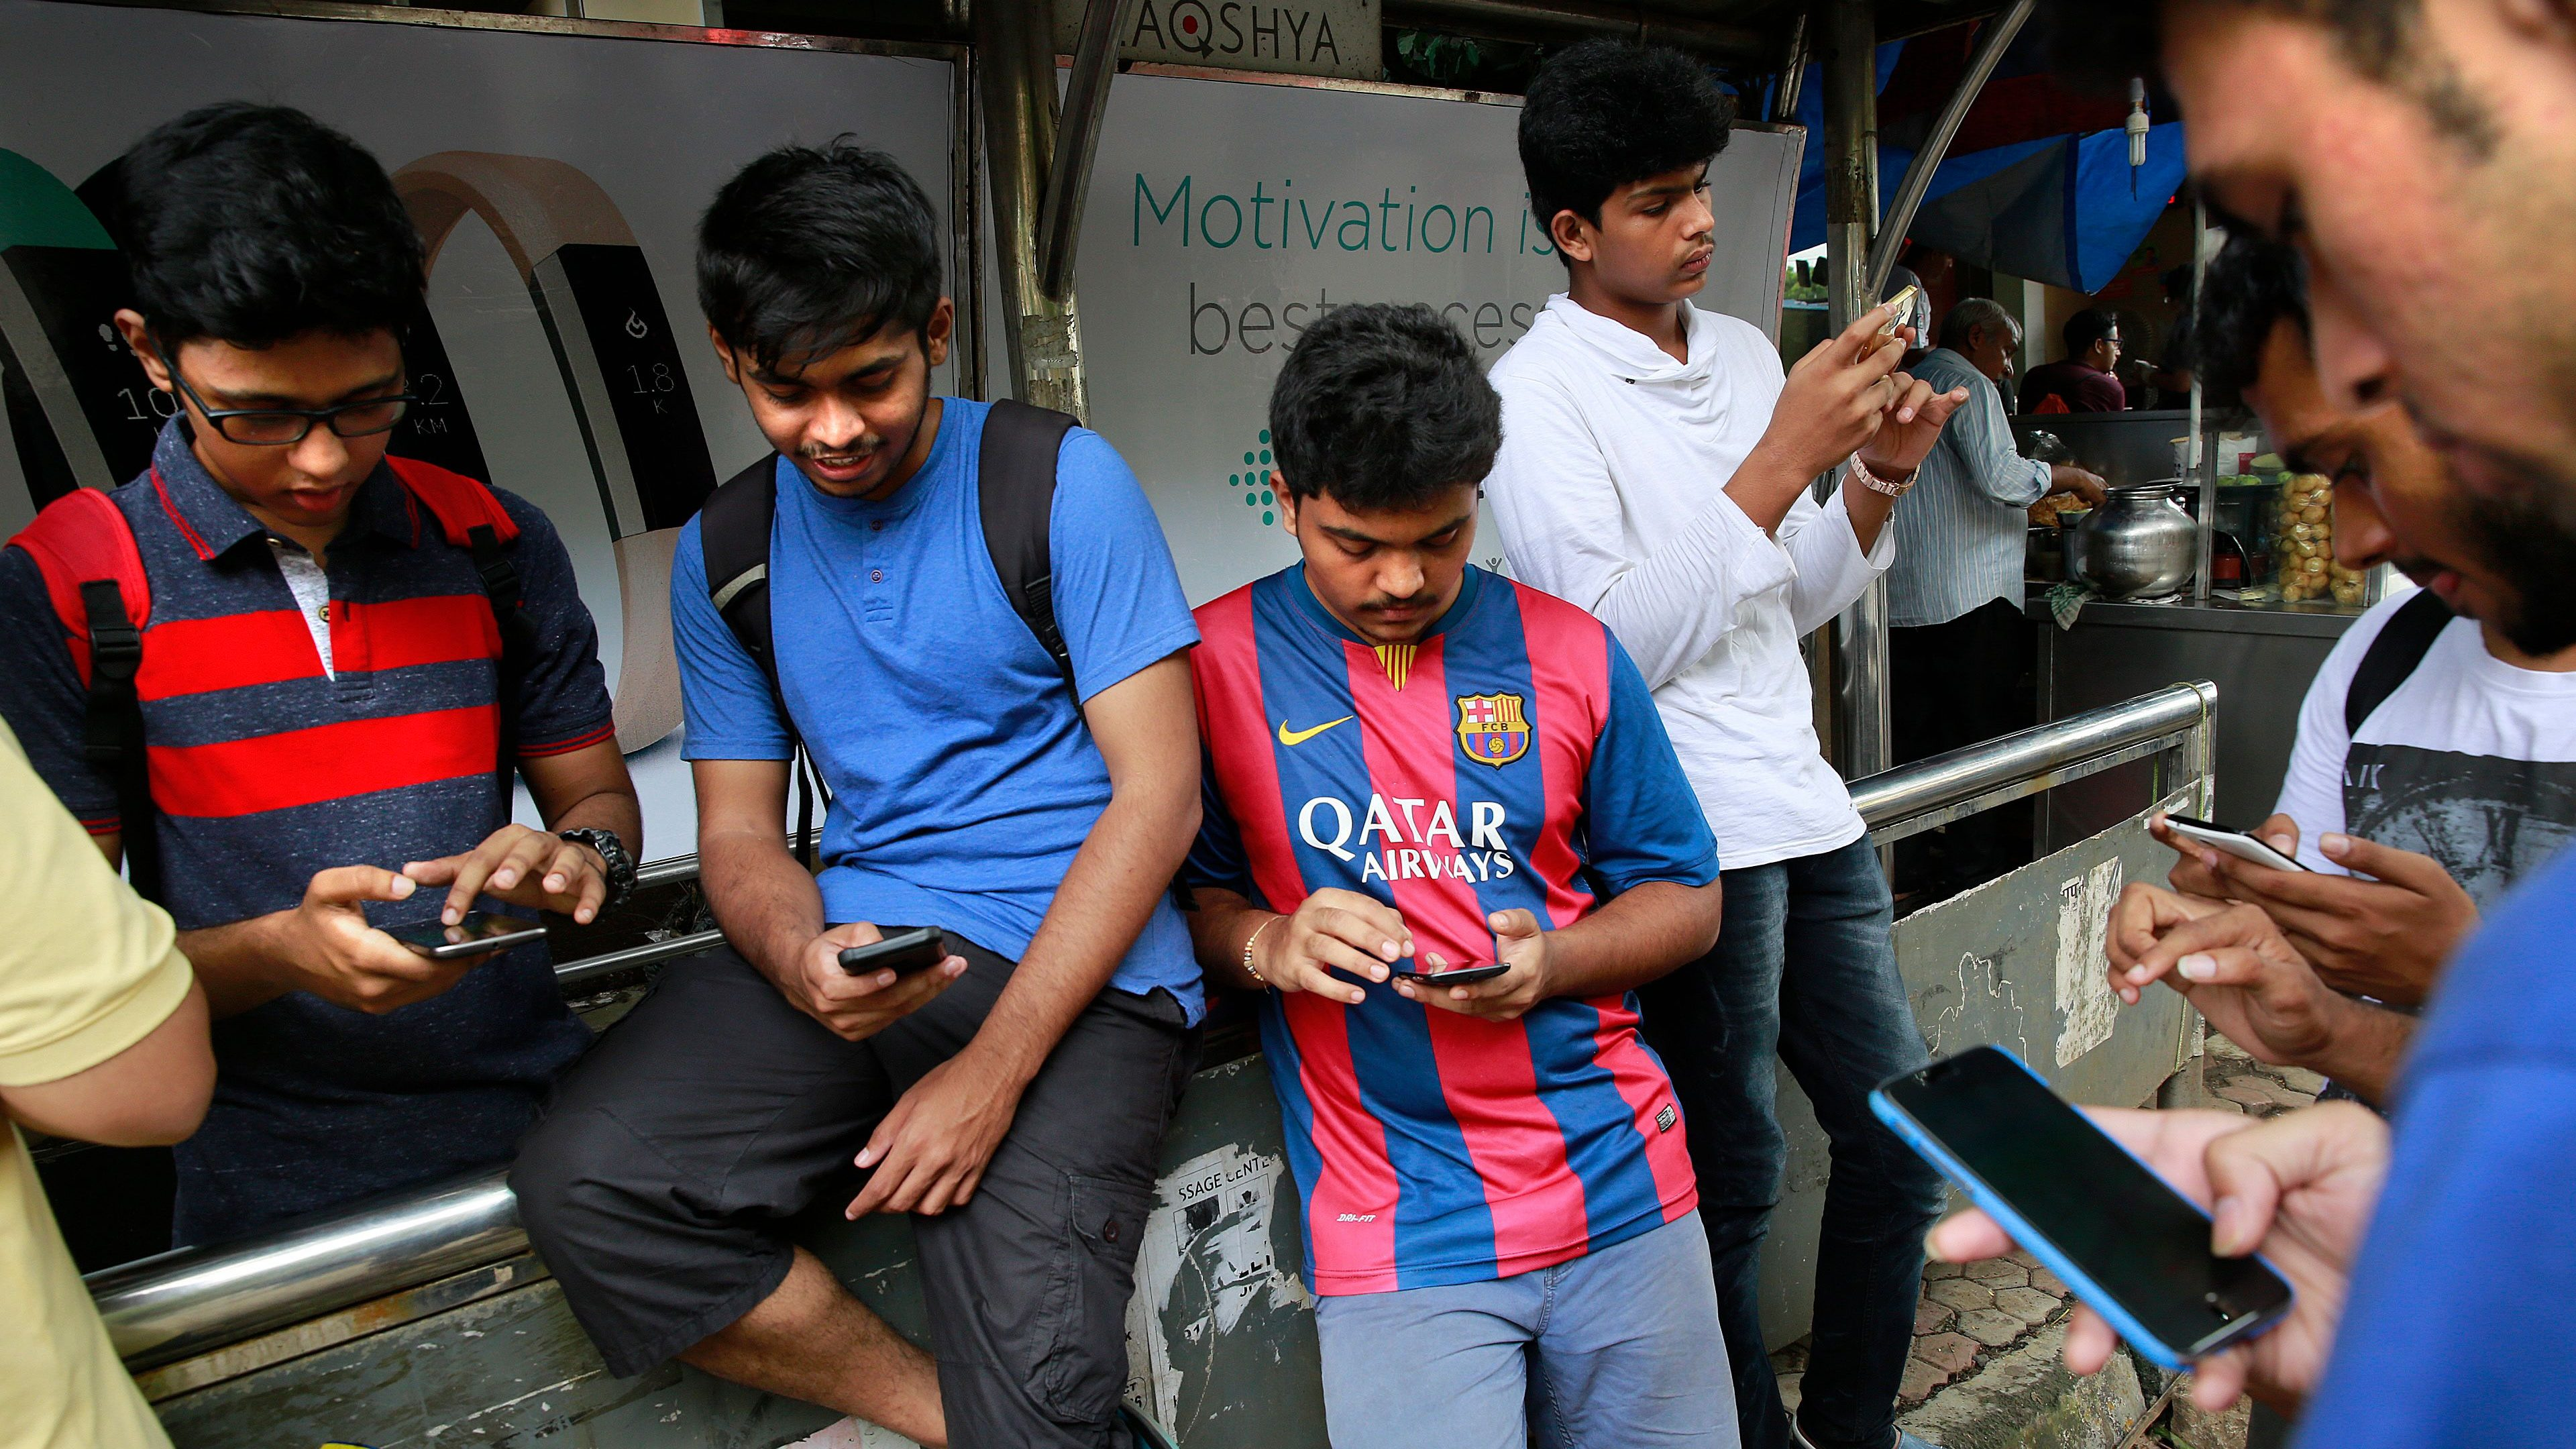 Indians are betting big on video games, says Jana survey